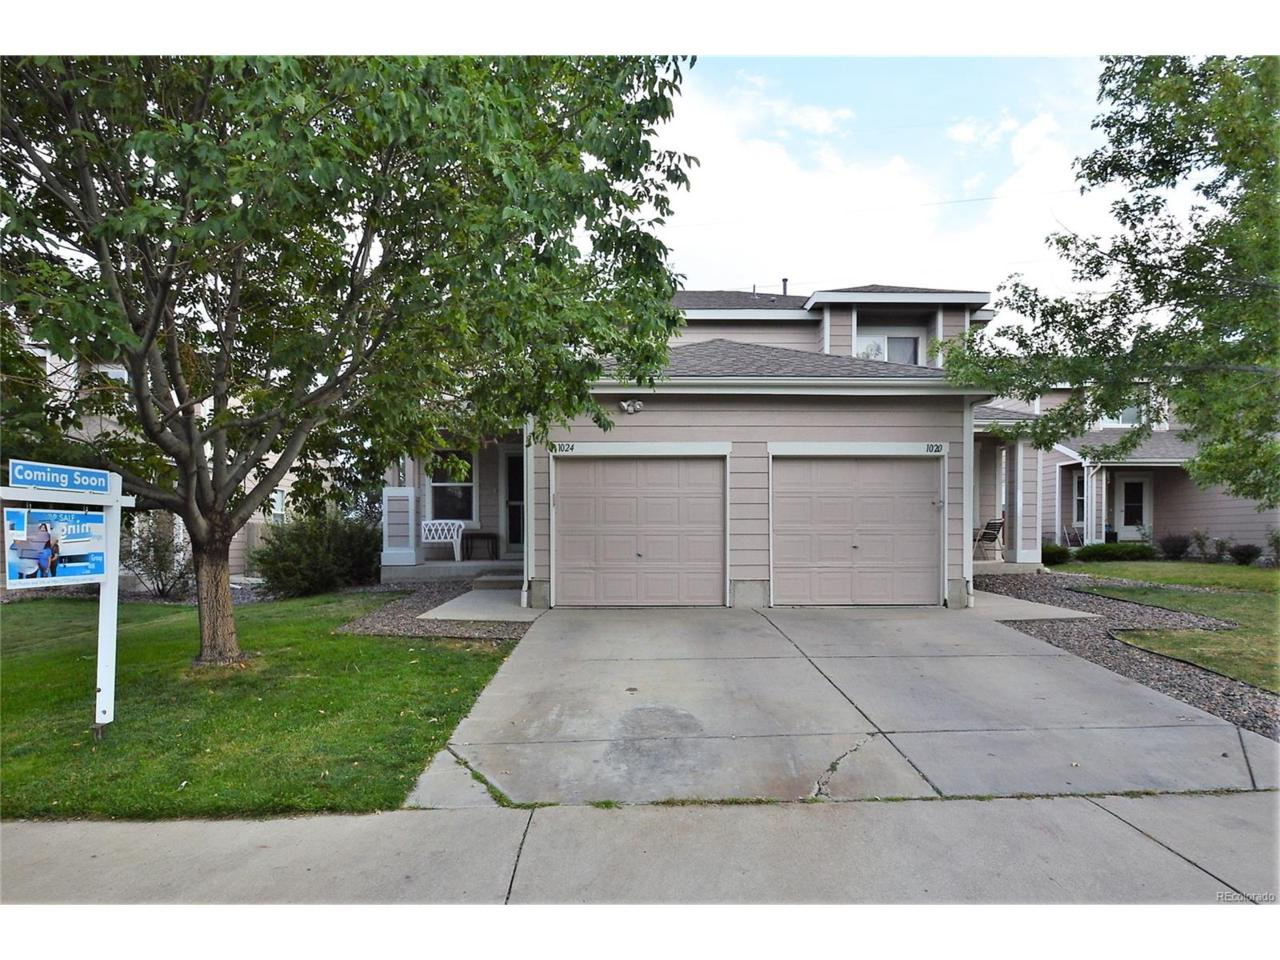 1024 E 78th Place, Thornton, CO 80229 (MLS #6529632) :: 8z Real Estate